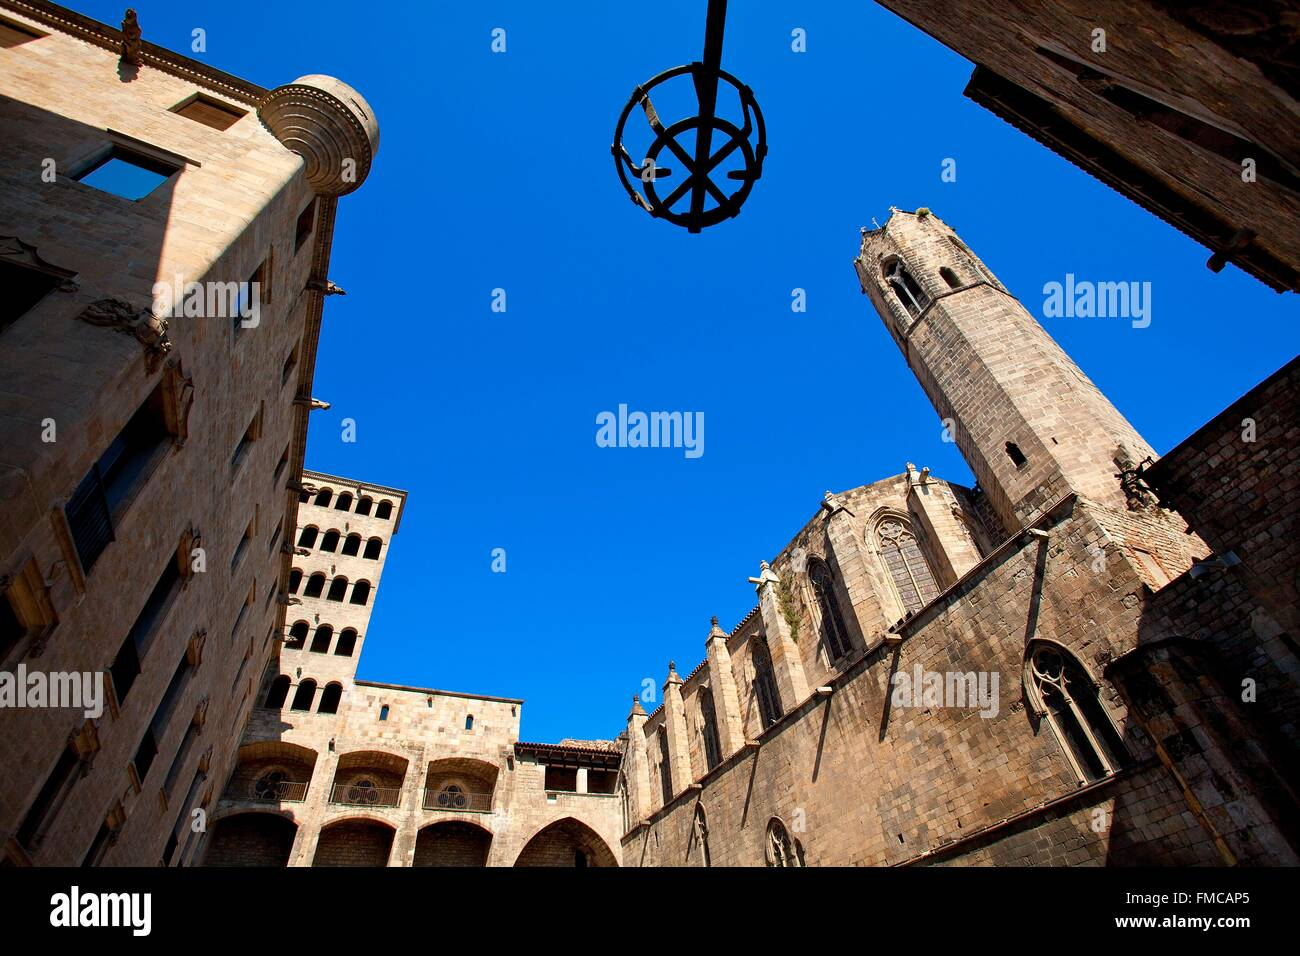 Spain, Catalonia, Barcelona, Placa del Rei, the 14th century royal chapel of Santa agata - Stock Image